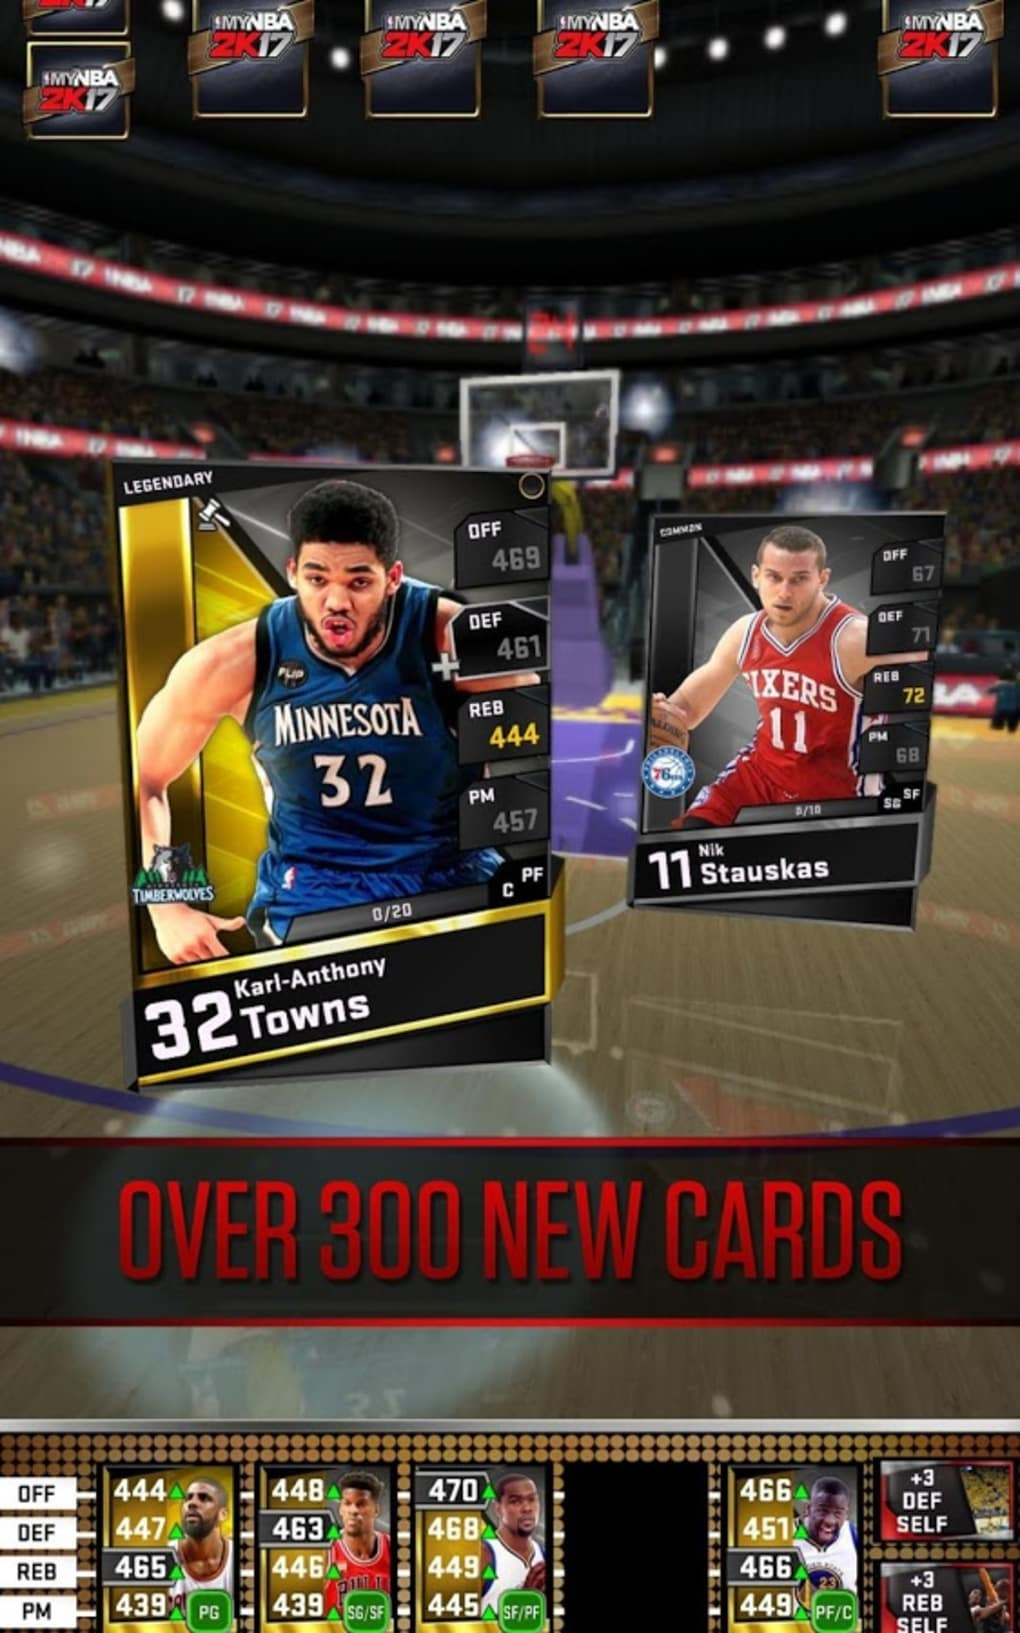 My NBA 2K17 for Android - Download